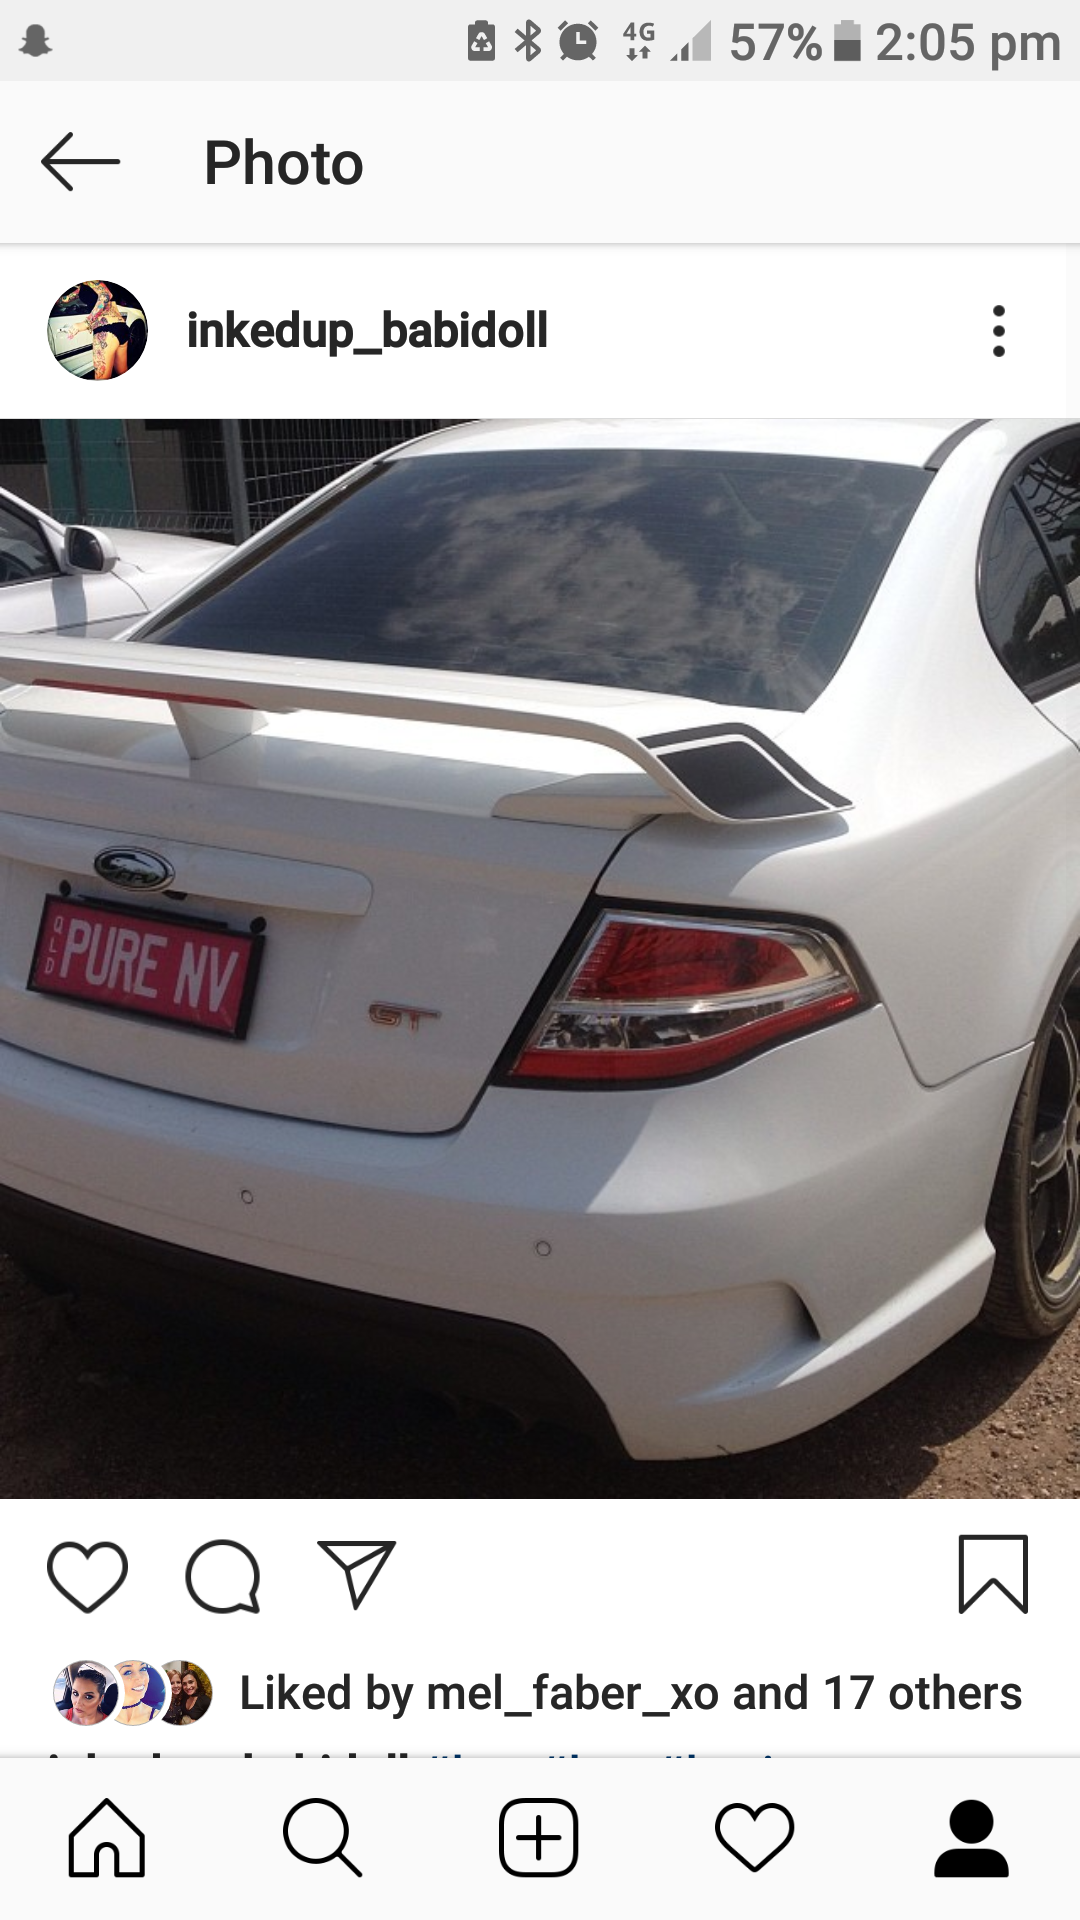 One of a Kind, PURE NV EYE Catching Personalised Plates